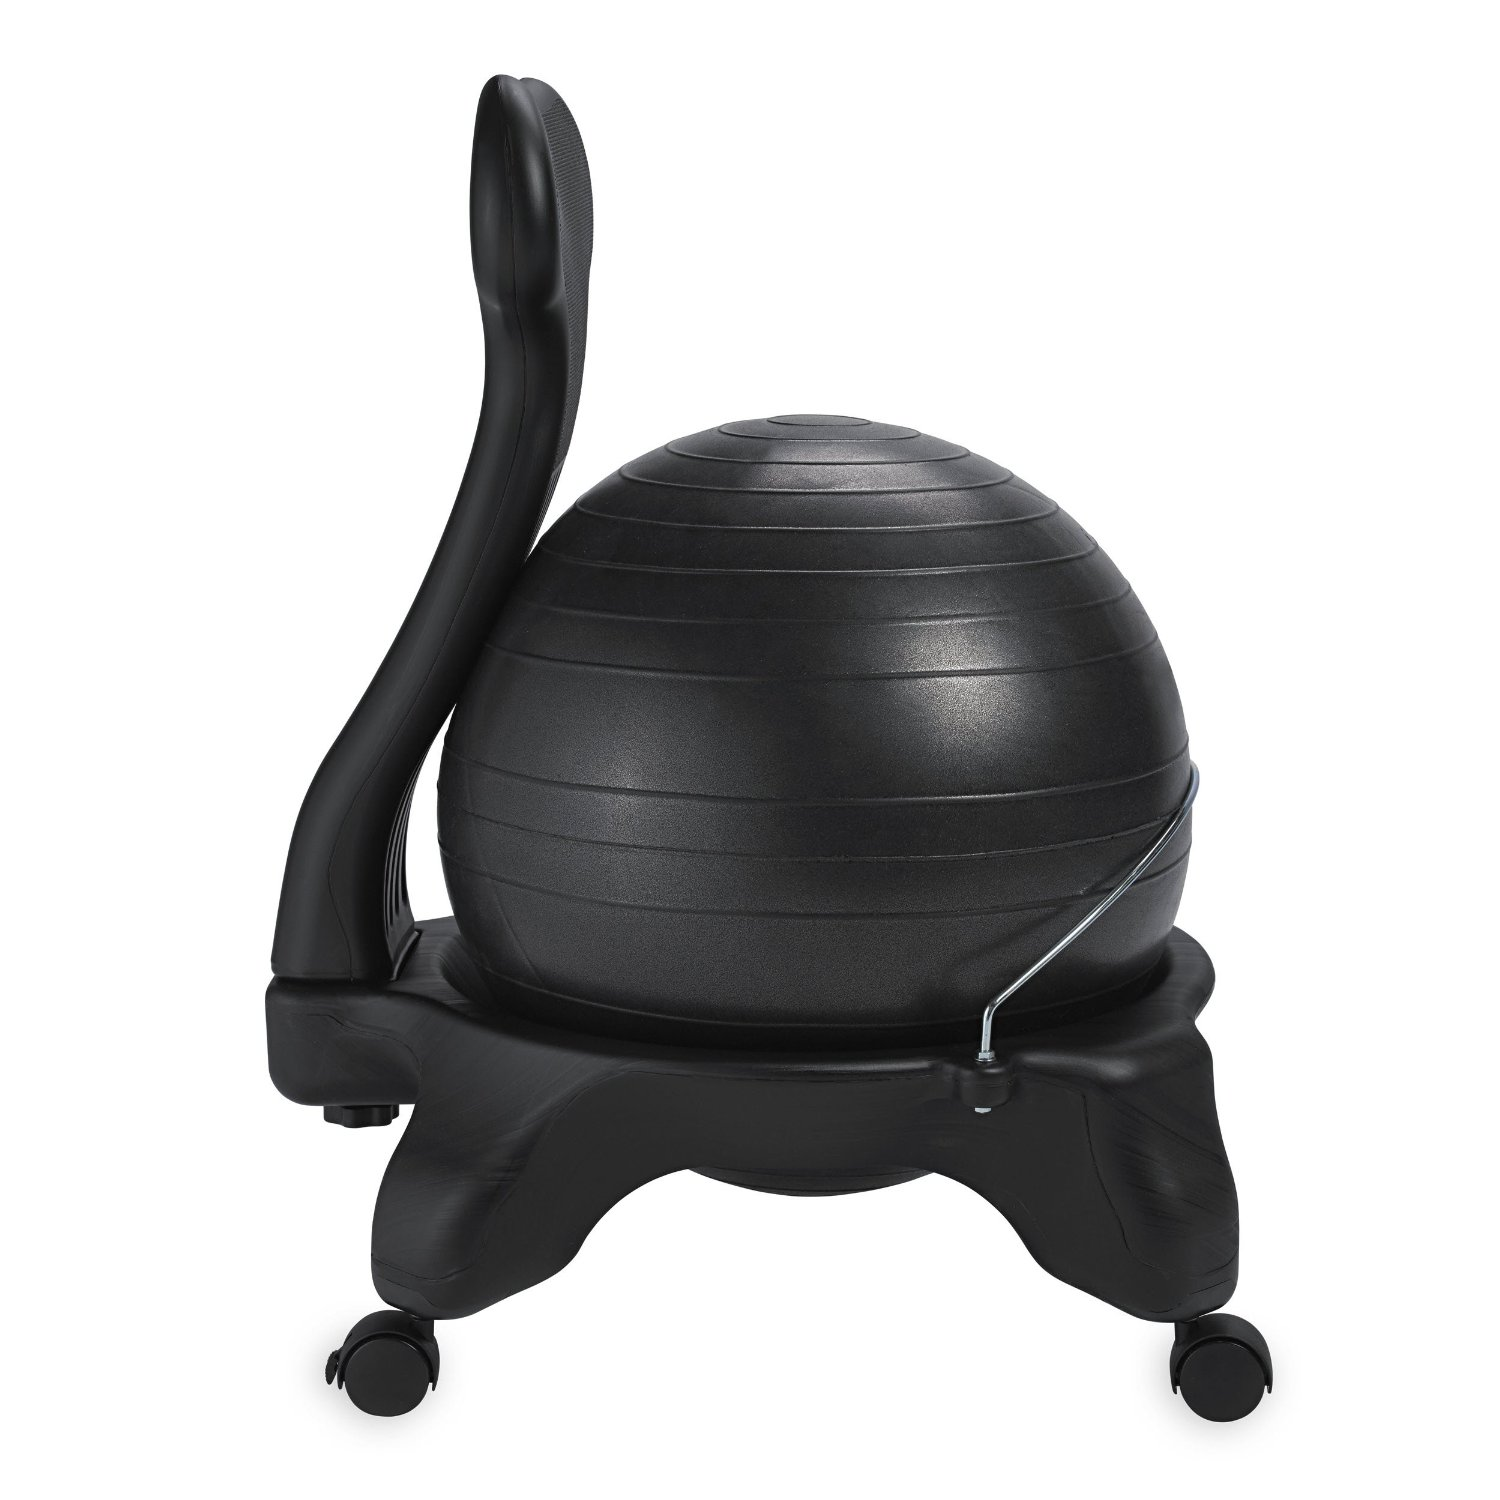 ball chair with built in legs